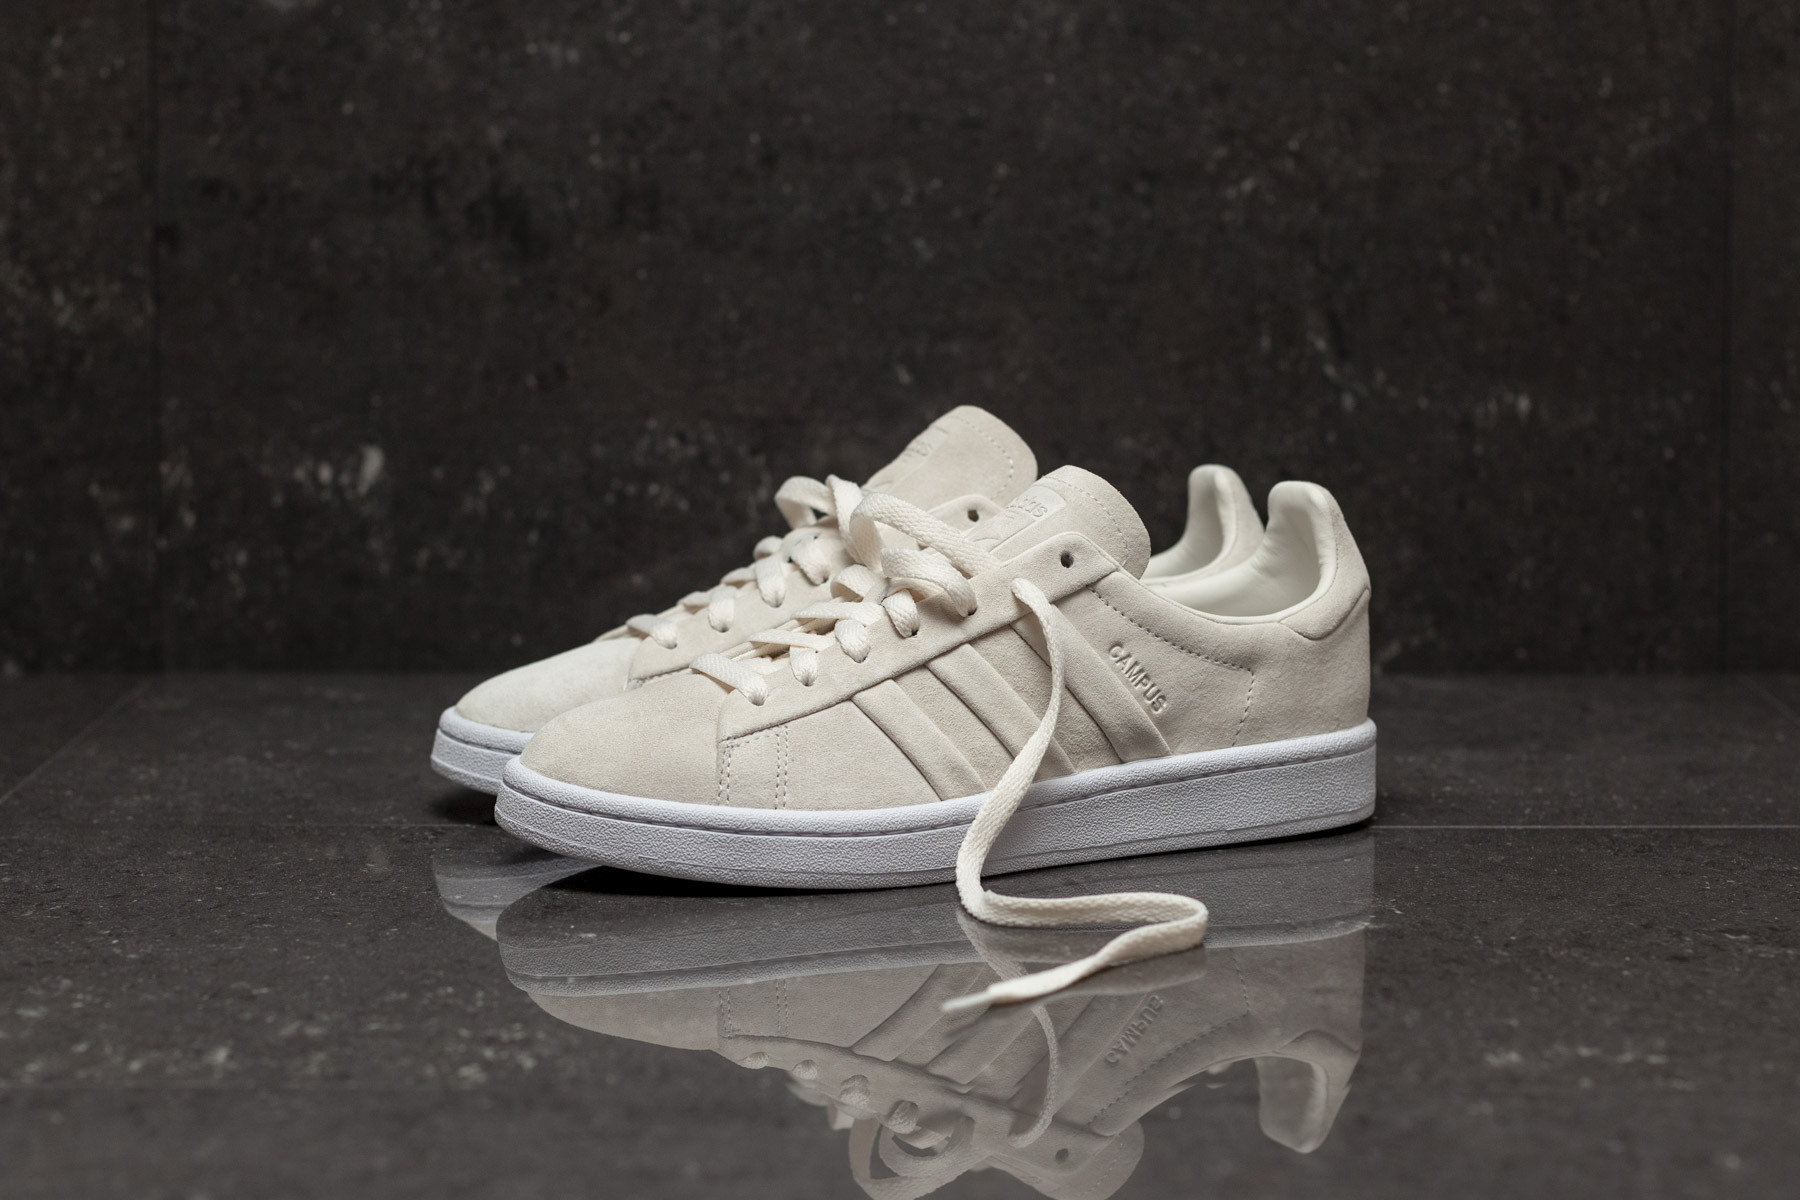 outlet store 06711 69f64 Adidas Campus Stitch And Turn - Herre - Sneakers - Sneaker.n